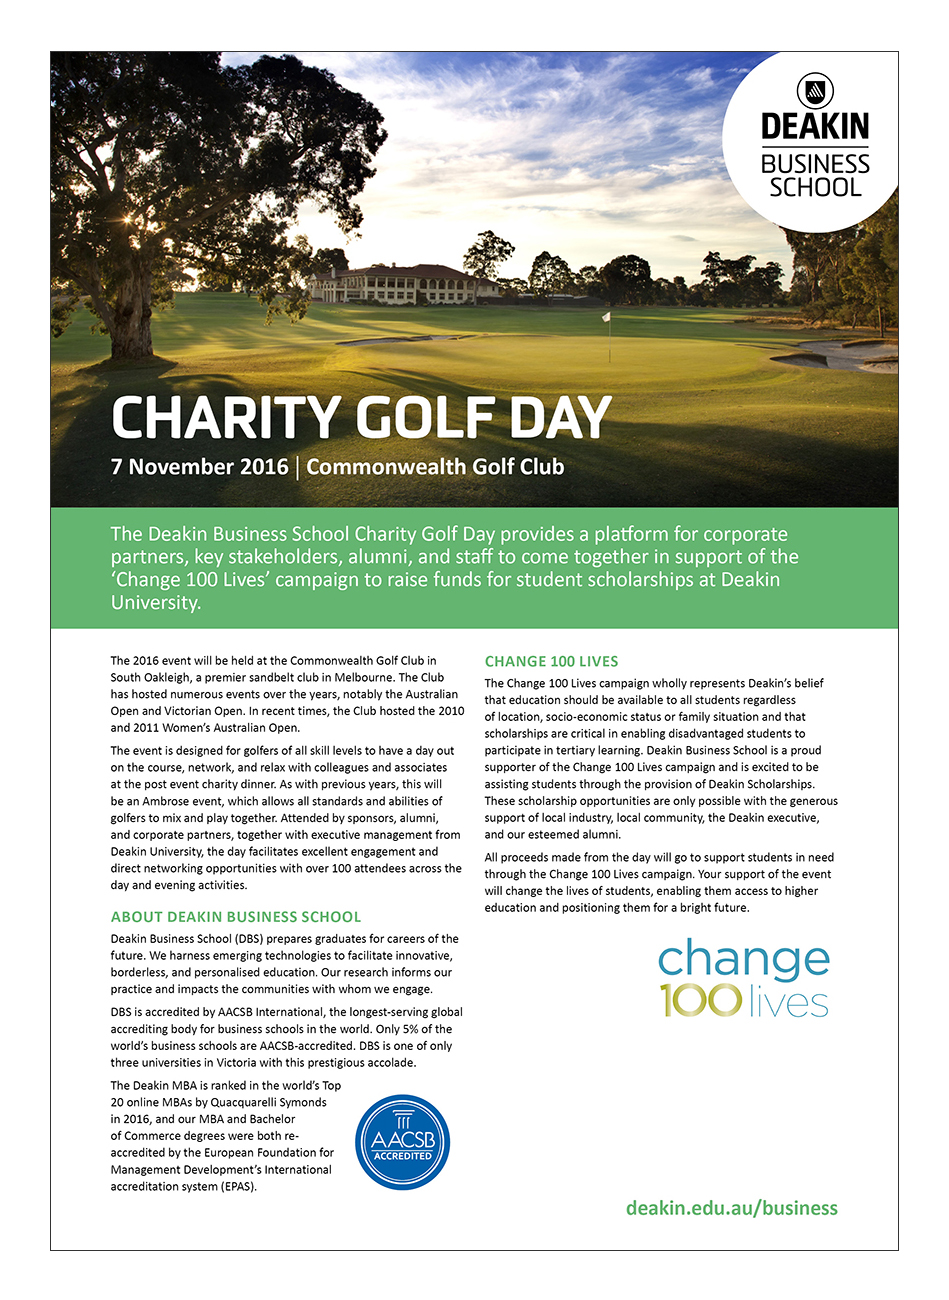 Deakin-Golf Day-sponsorship-proposal.jpg